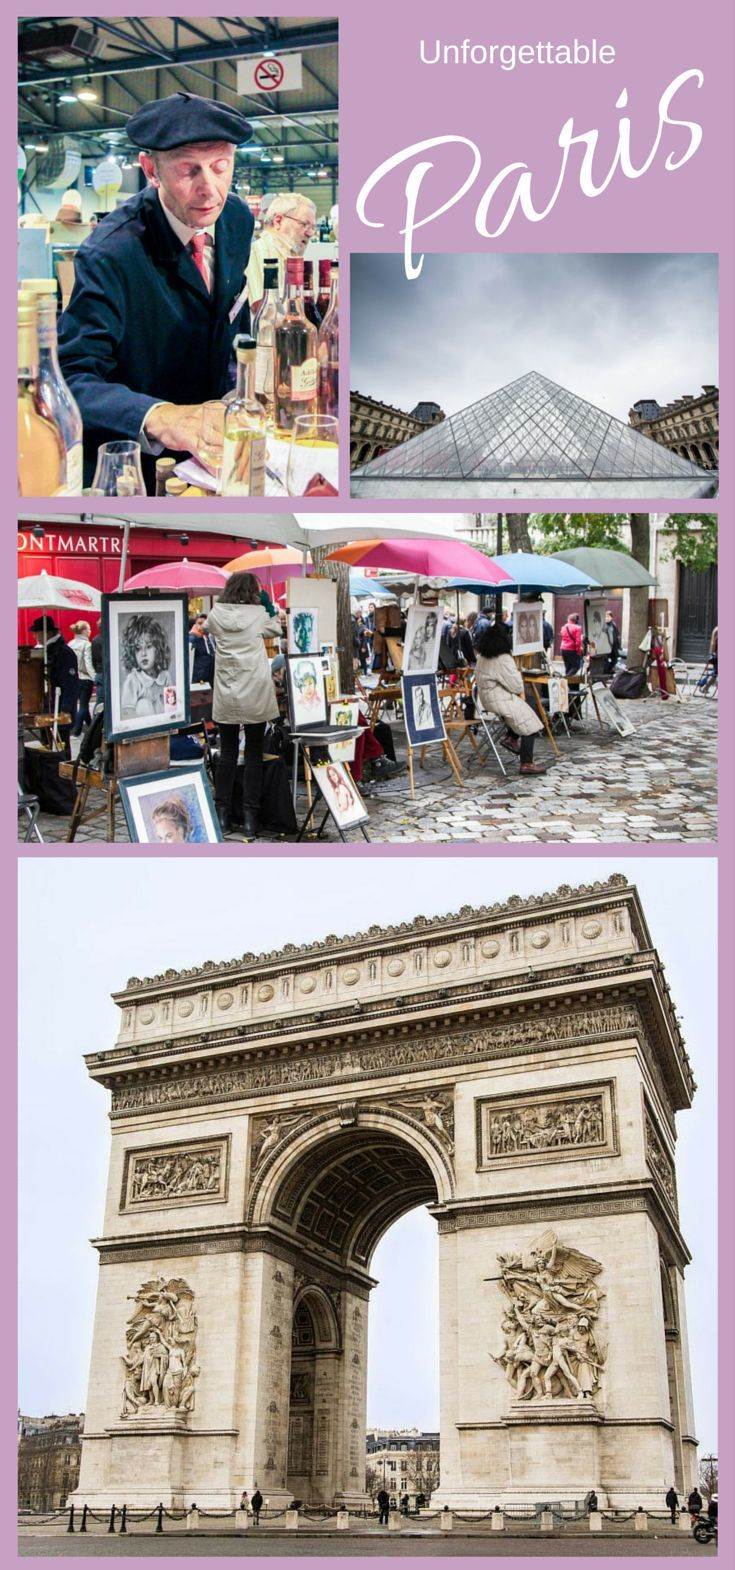 The Unforgettable Top Ten of La Belle Paris